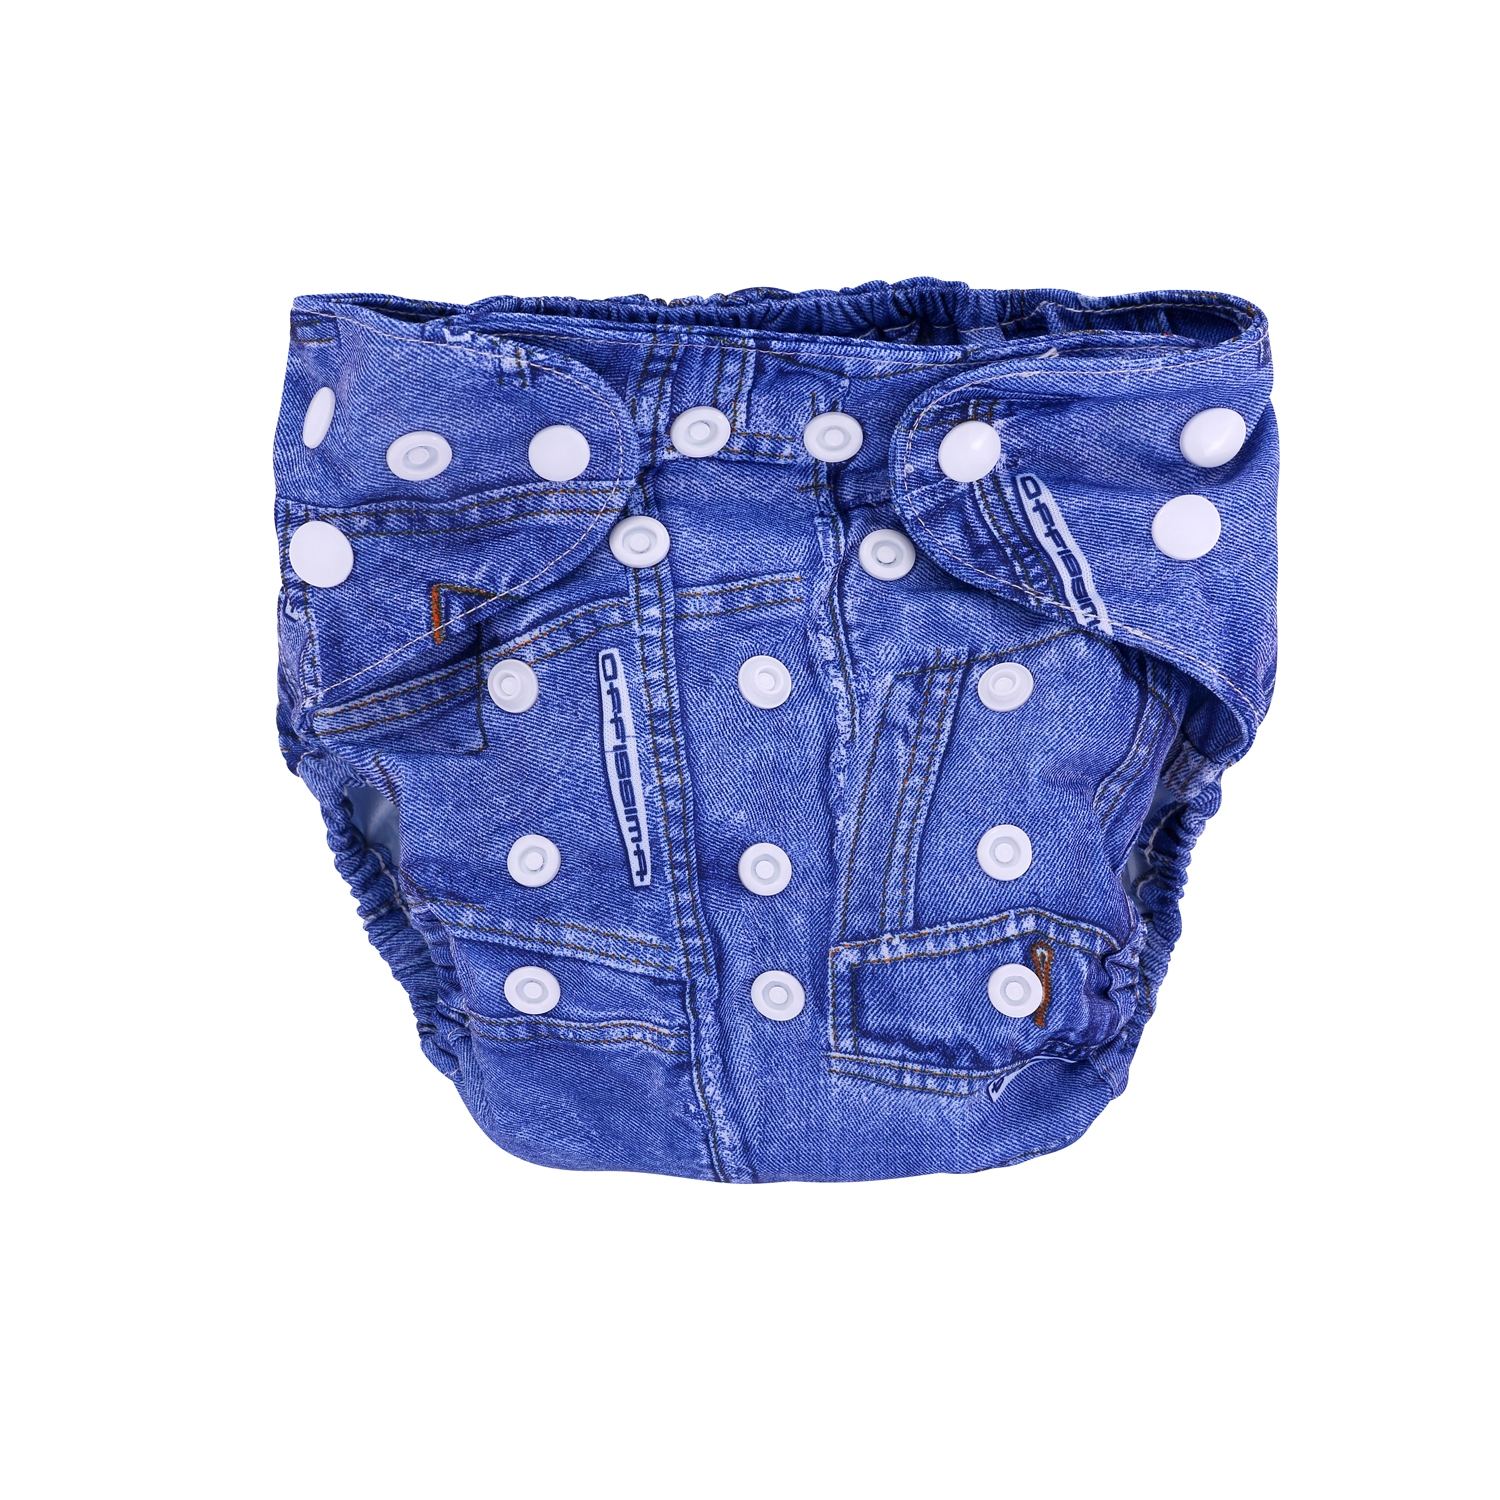 jeans-pul-sperrelag-pul-cover-os-5-15kg